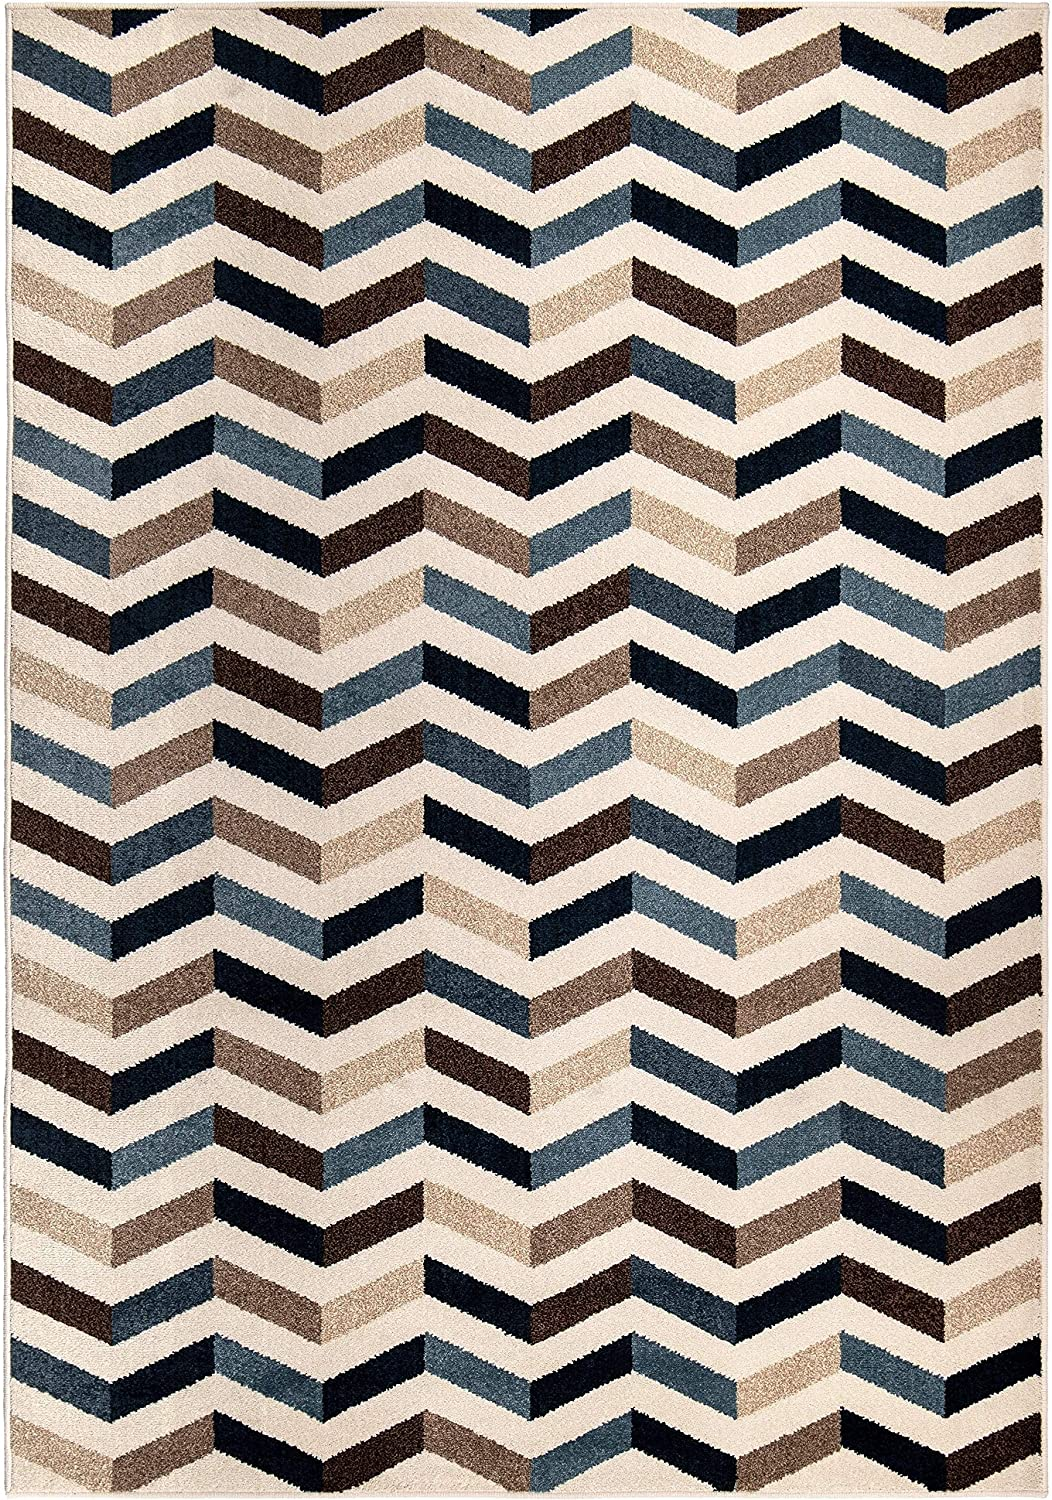 "Farmhouse Blue Area Rug (3'9"" X 5'4"") 3'11"" 5'5"" Beige Geometric Modern Contemporary Rectangle Polypropylene Contains Latex Stain Resistant"